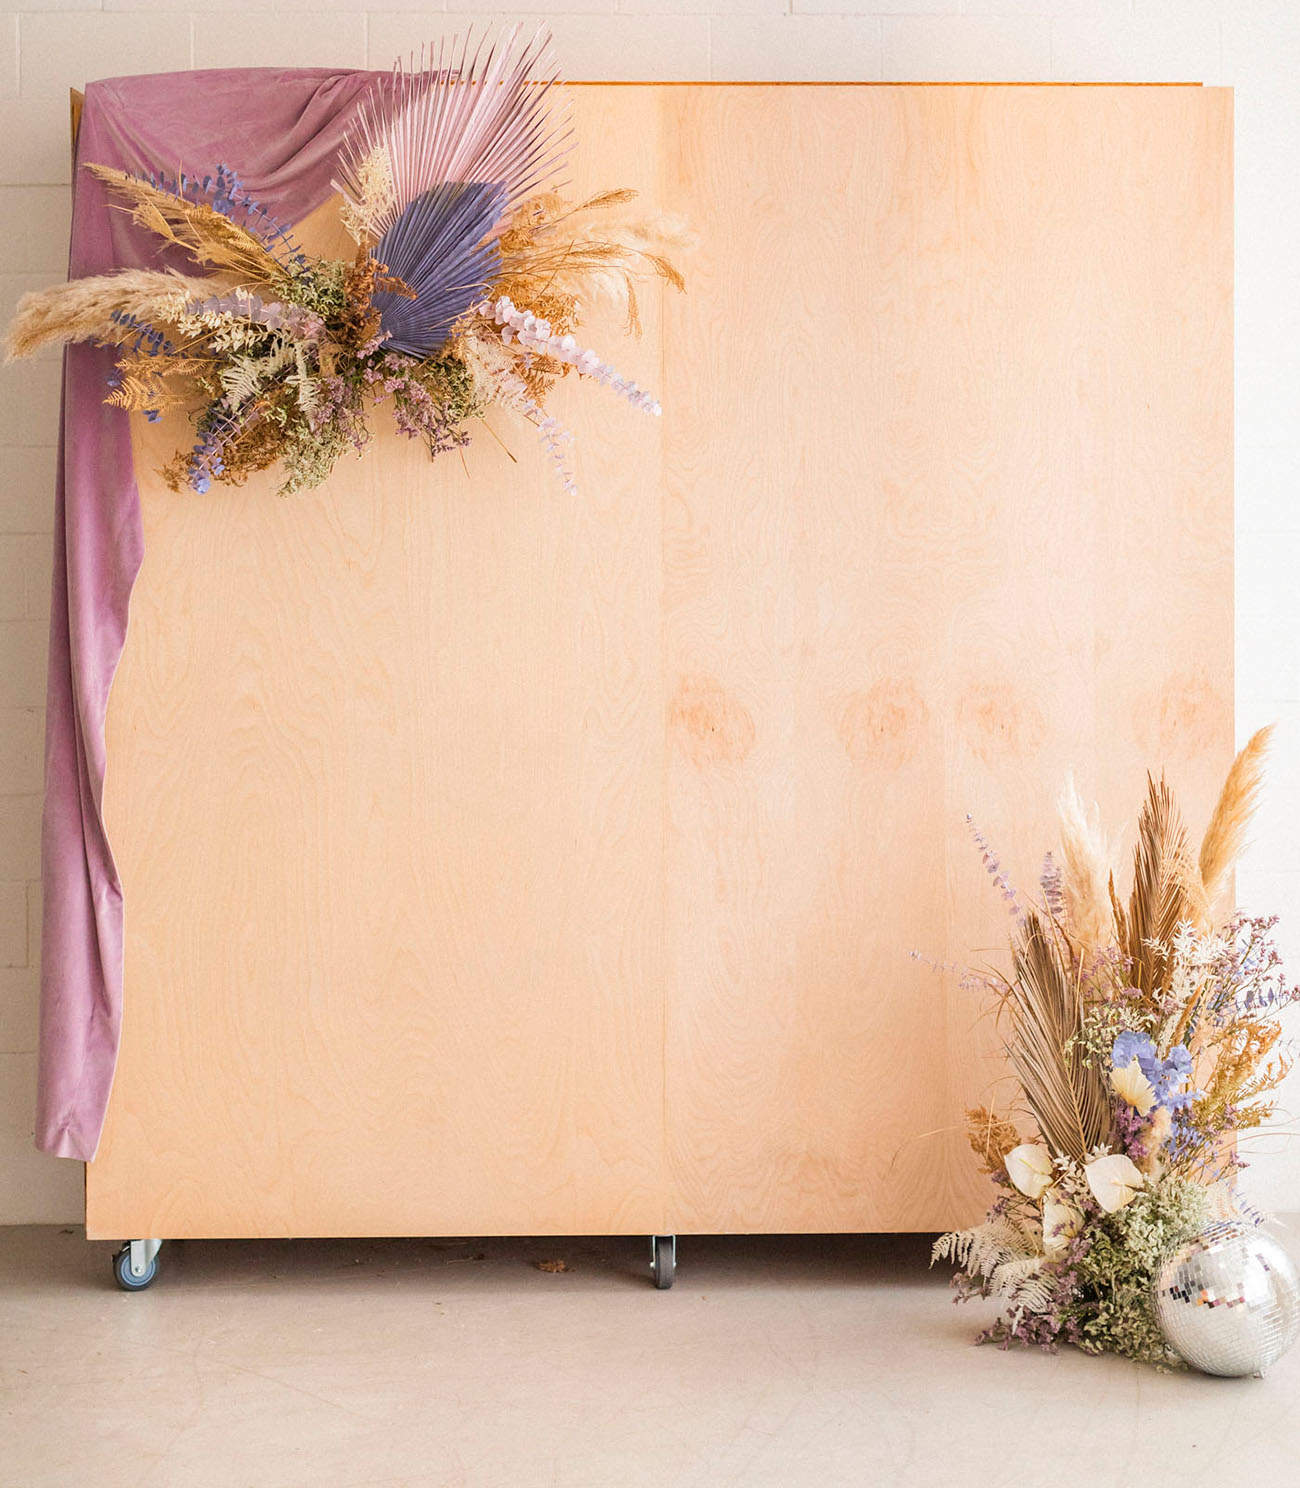 The wedding backdrop was done of plywood, with colored fronds, dried blooms and greenery